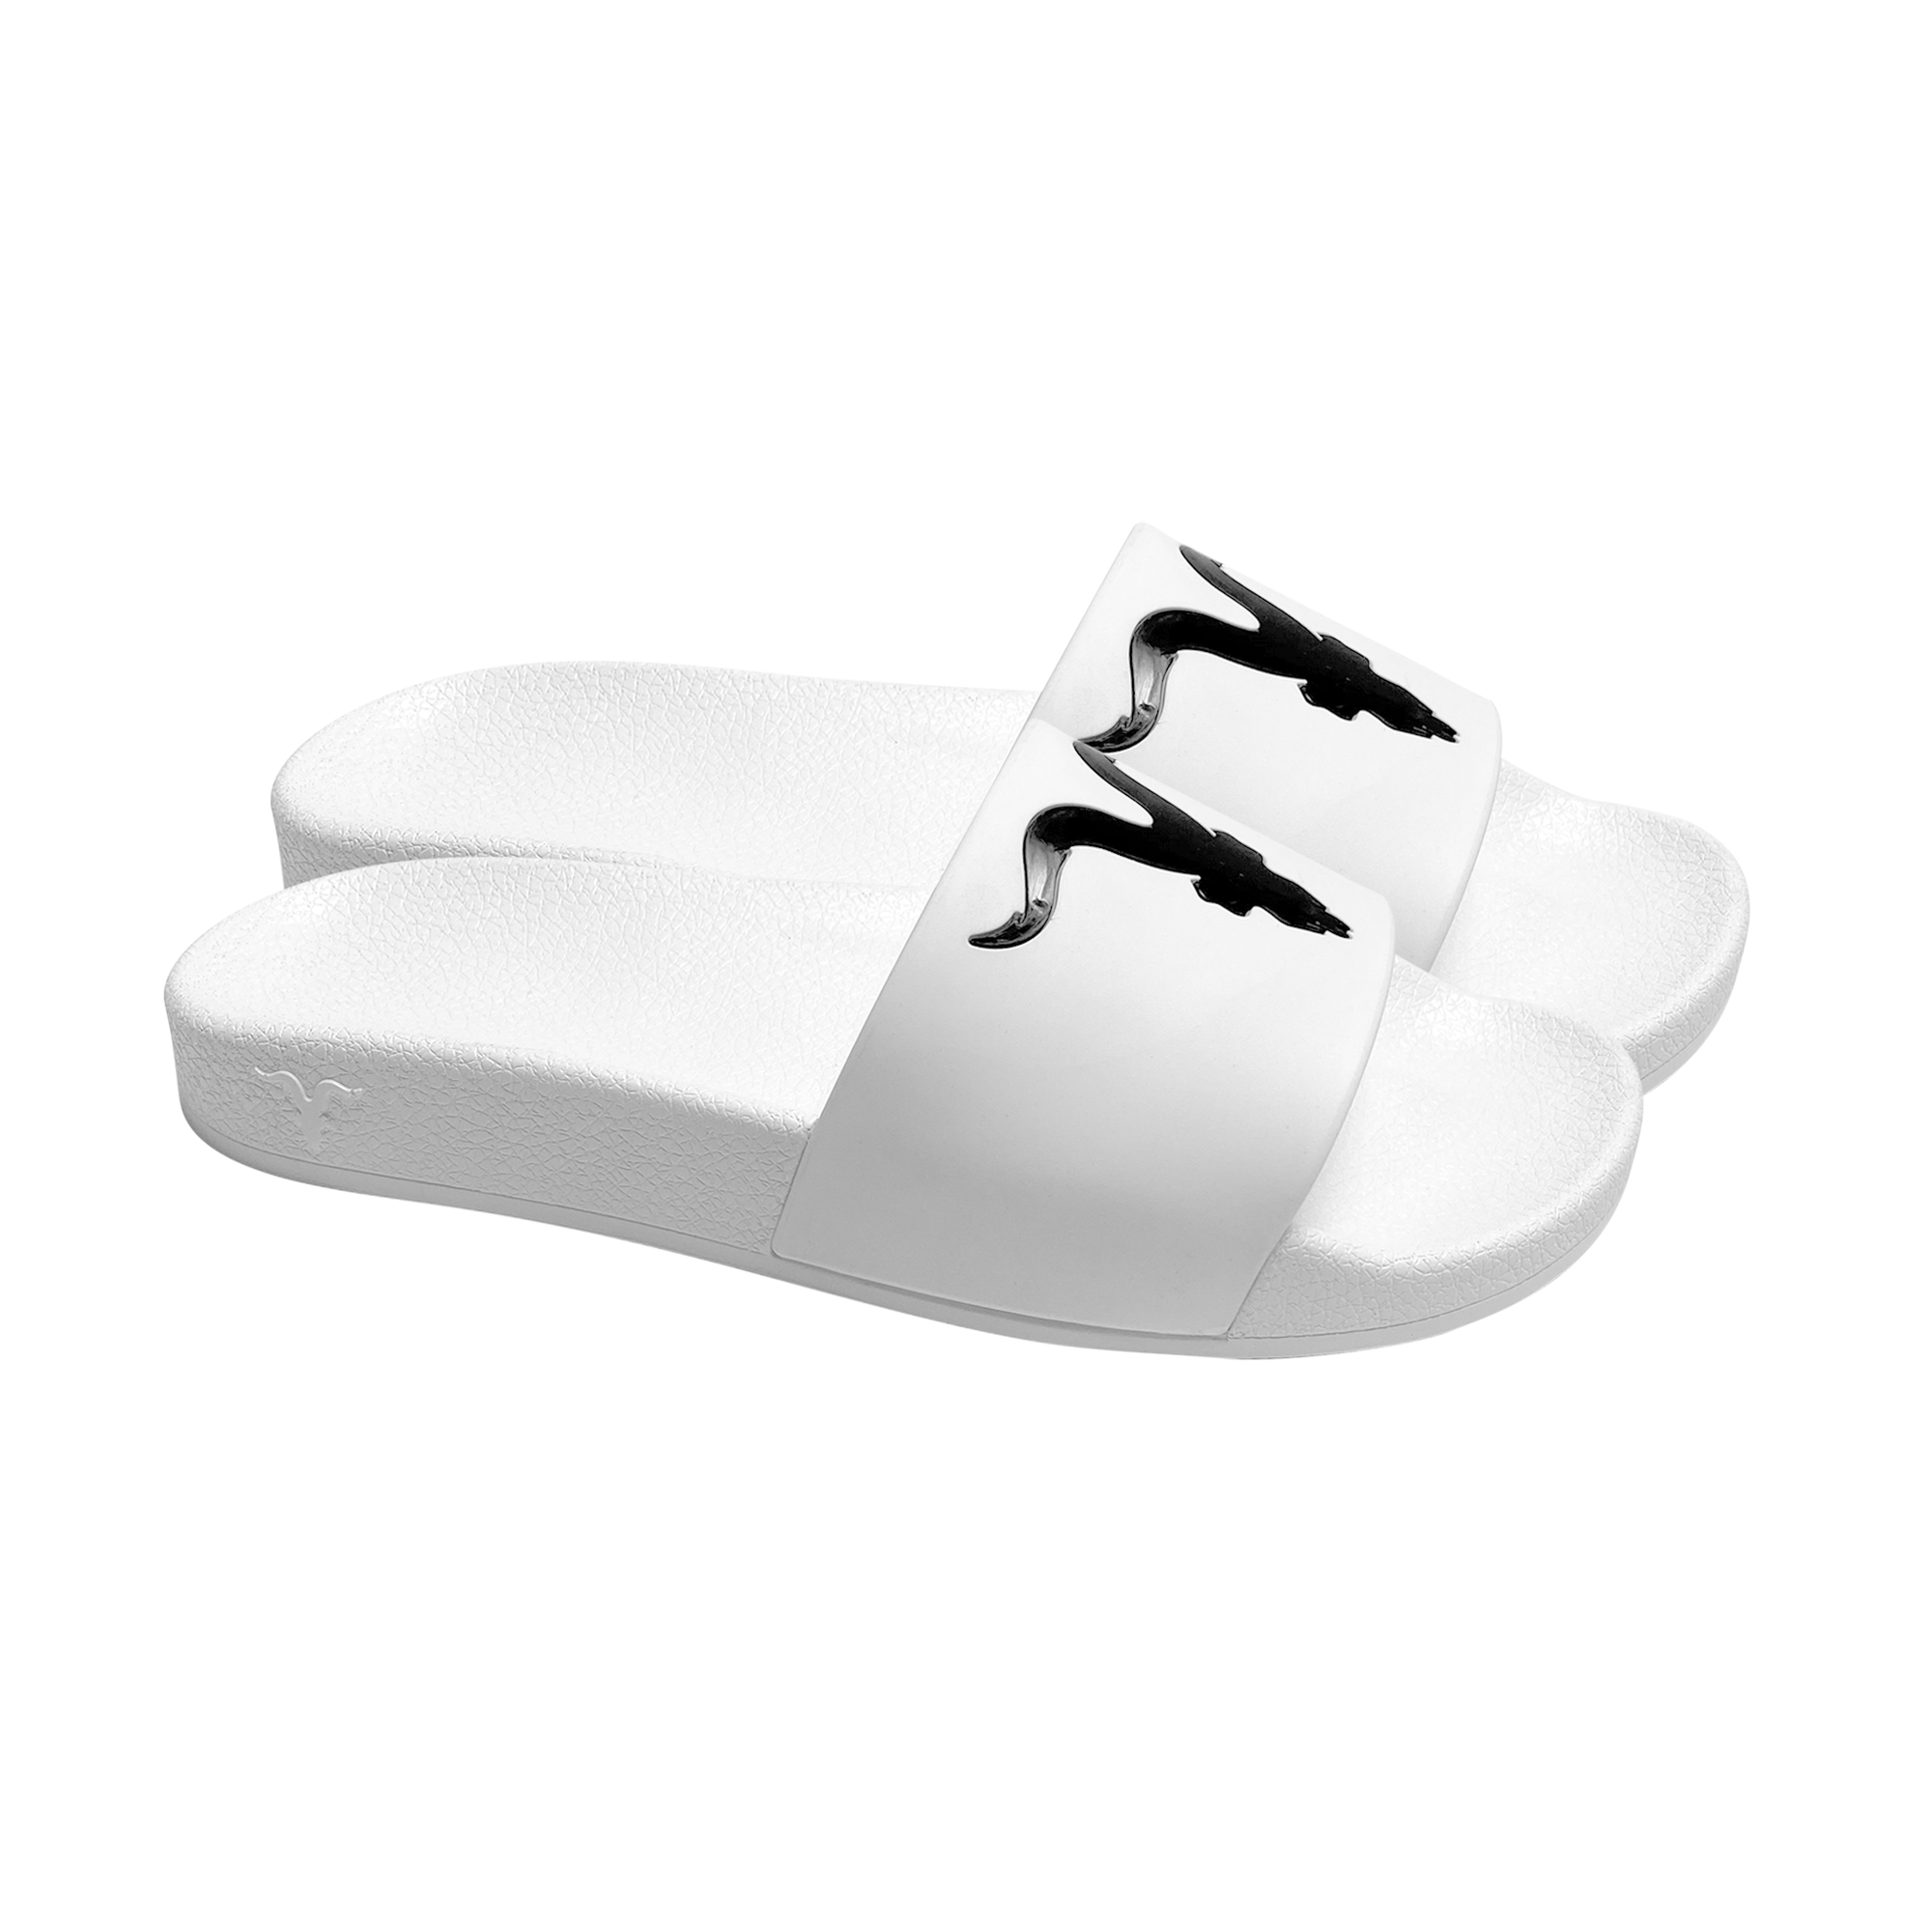 Mens Slides - Black Logo on White